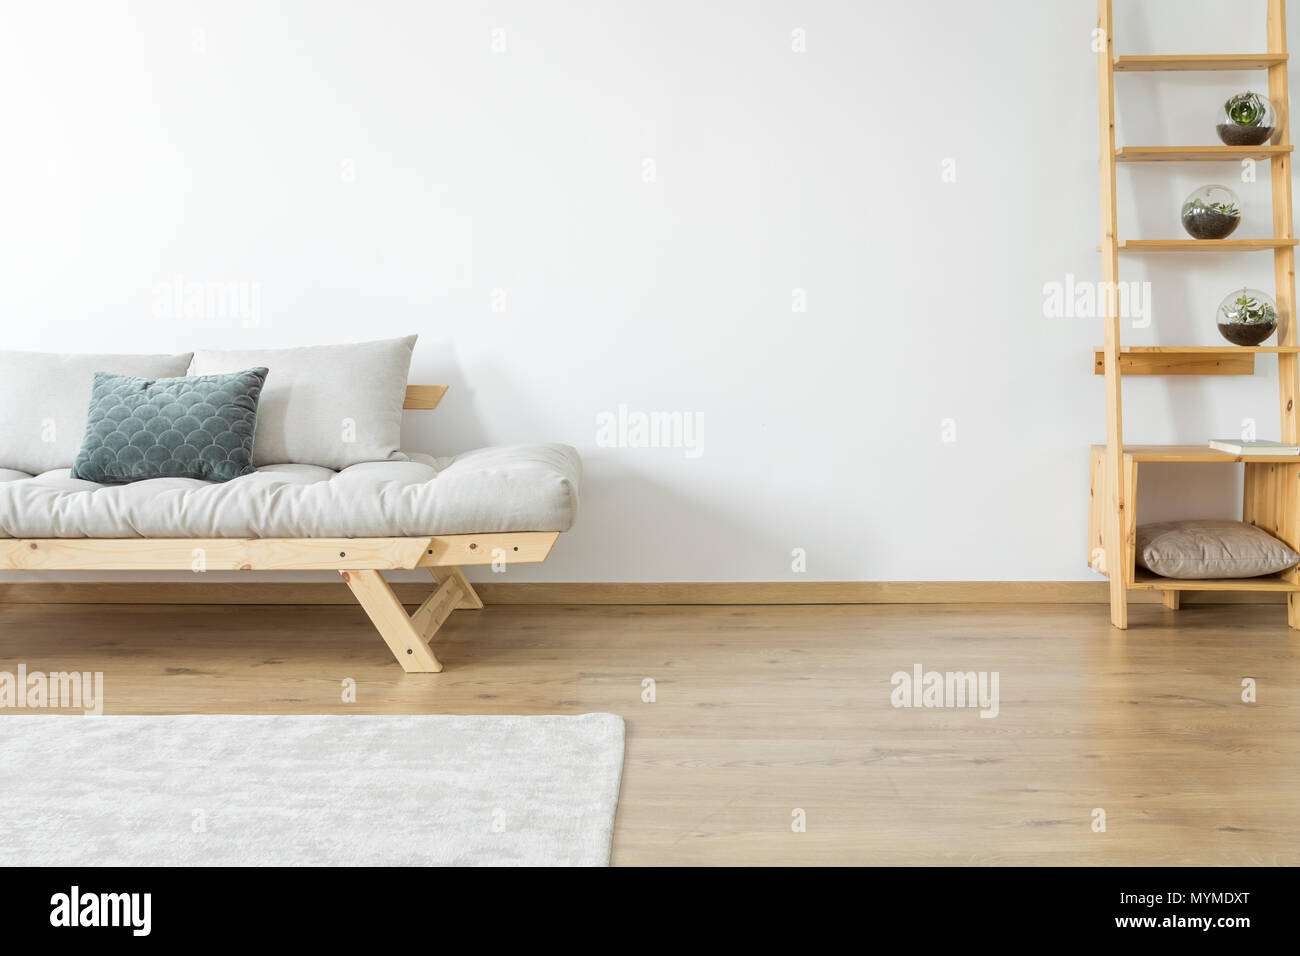 Swell Copy Space Of White Wall And Carpet On The Floor In Beige Interior Design Ideas Clesiryabchikinfo